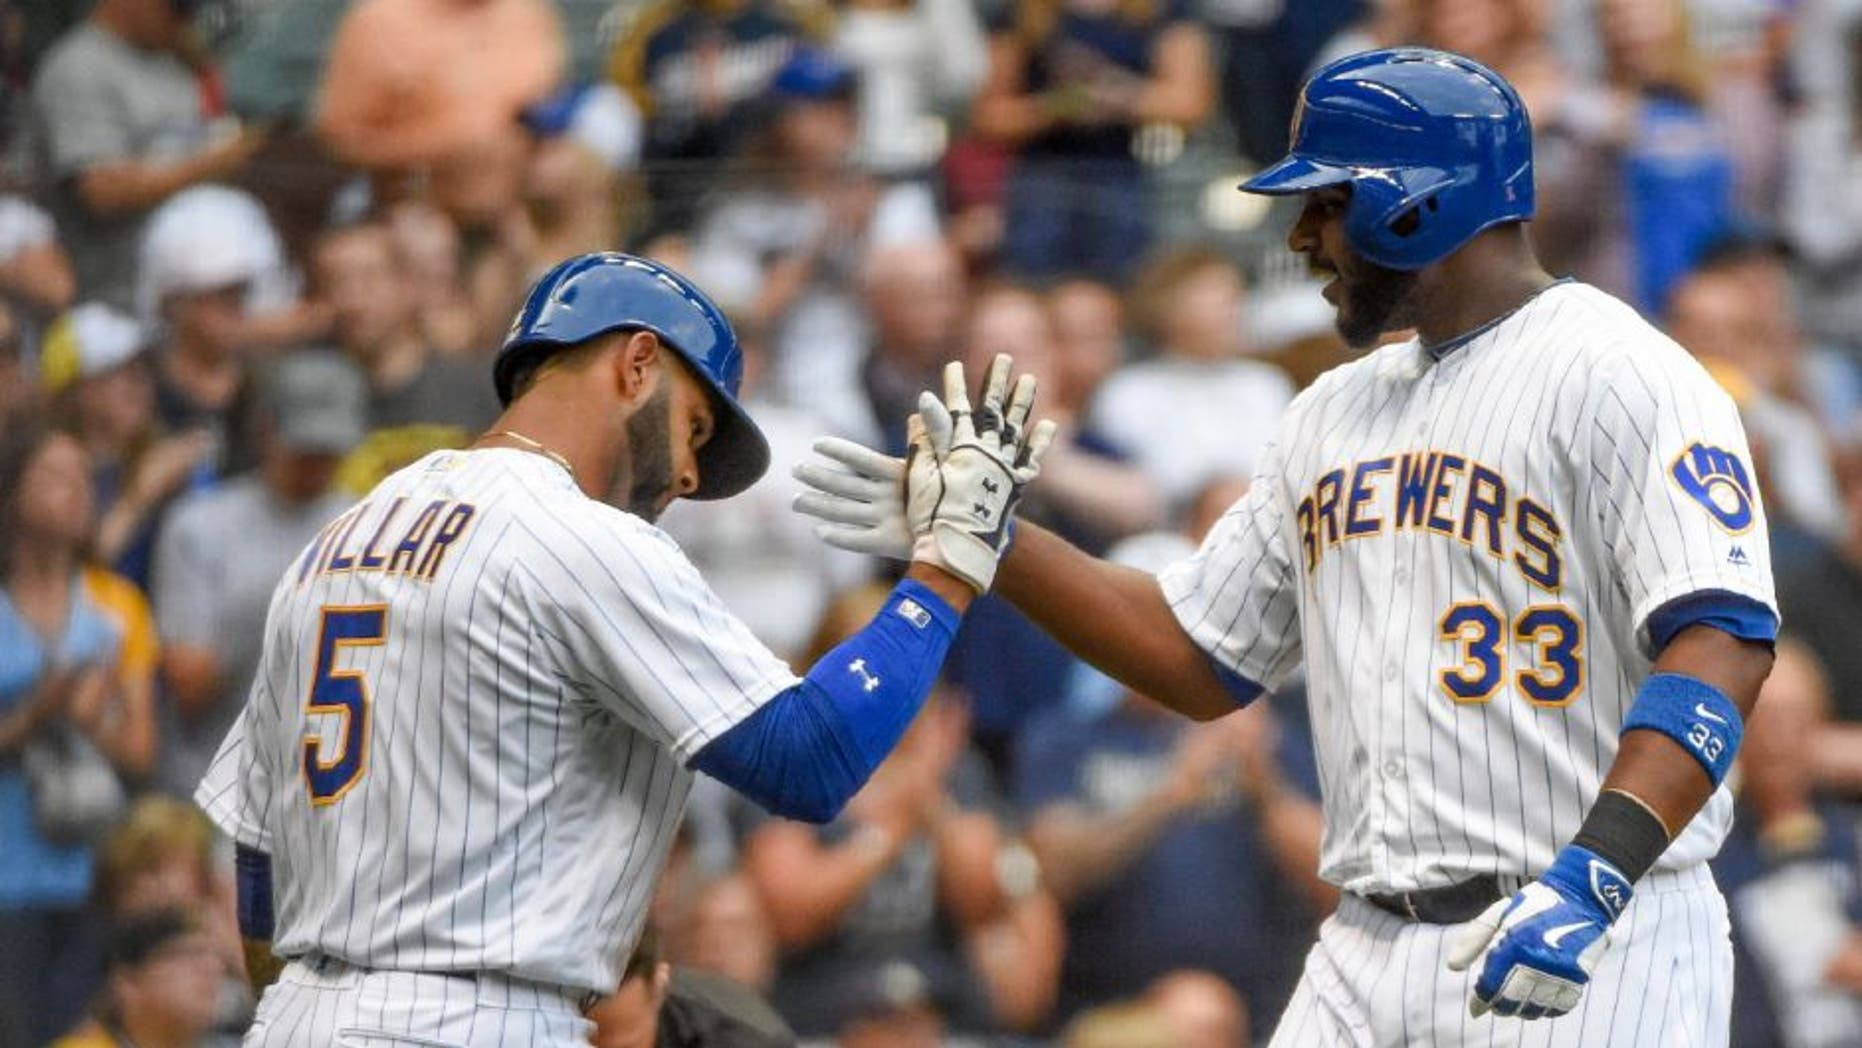 Milwaukee Brewers first baseman Chris Carter, right, is greeted by Jonathan Villar after hitting a two-run home run during the first inning against the Pittsburgh Pirates on Friday, July 29.